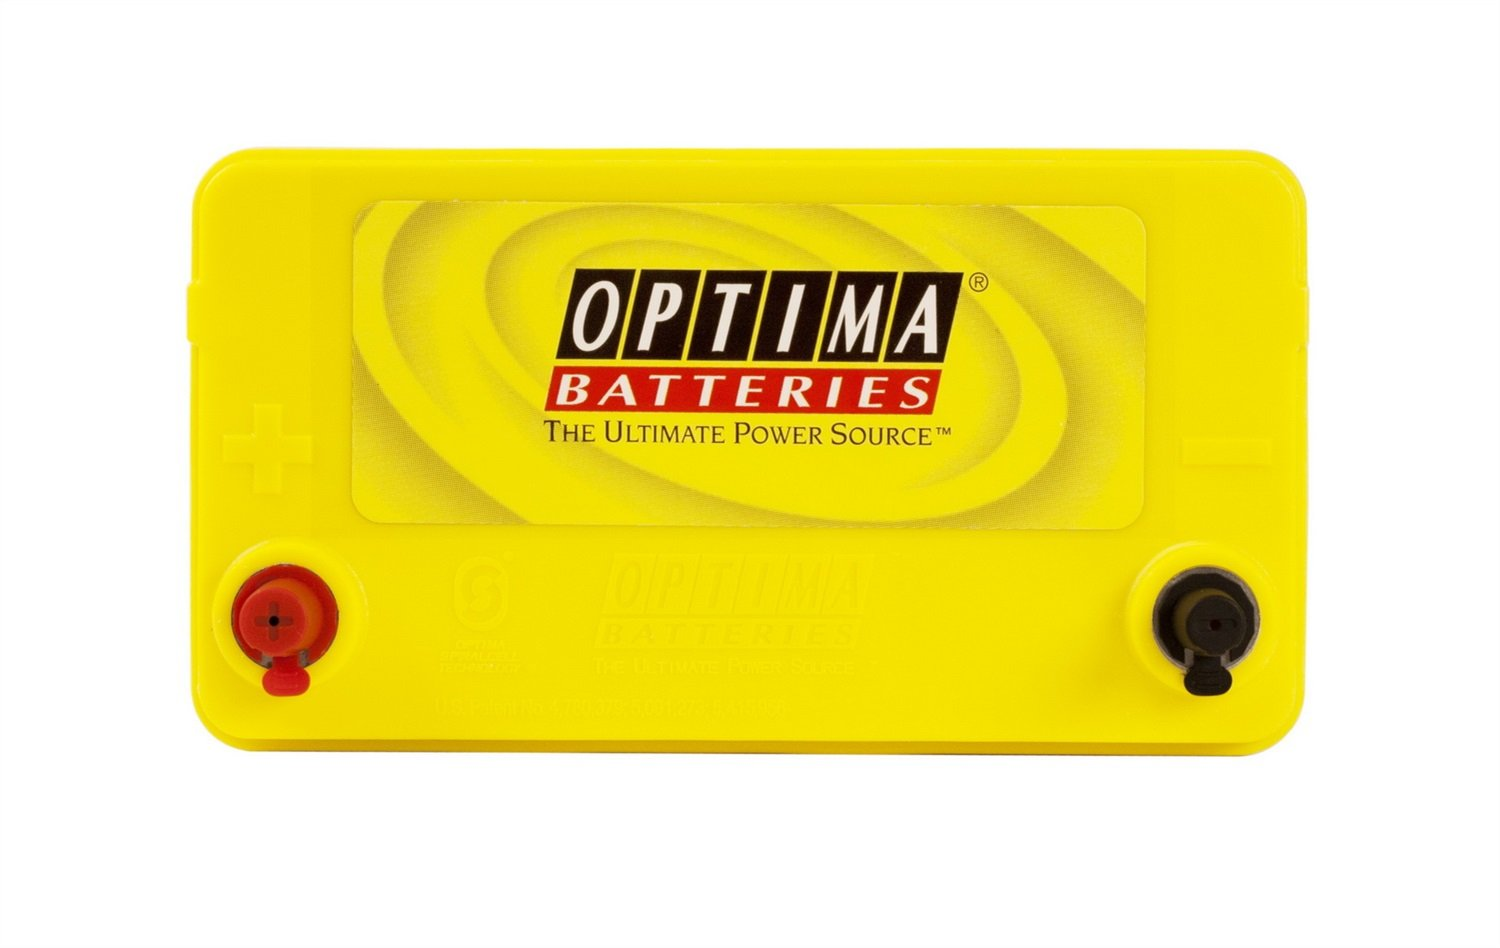 Optima Batteries 8171 767 Ds46b24r Yellowtop Prius Acdelco Alternator Wiring Harness Battery Automotive